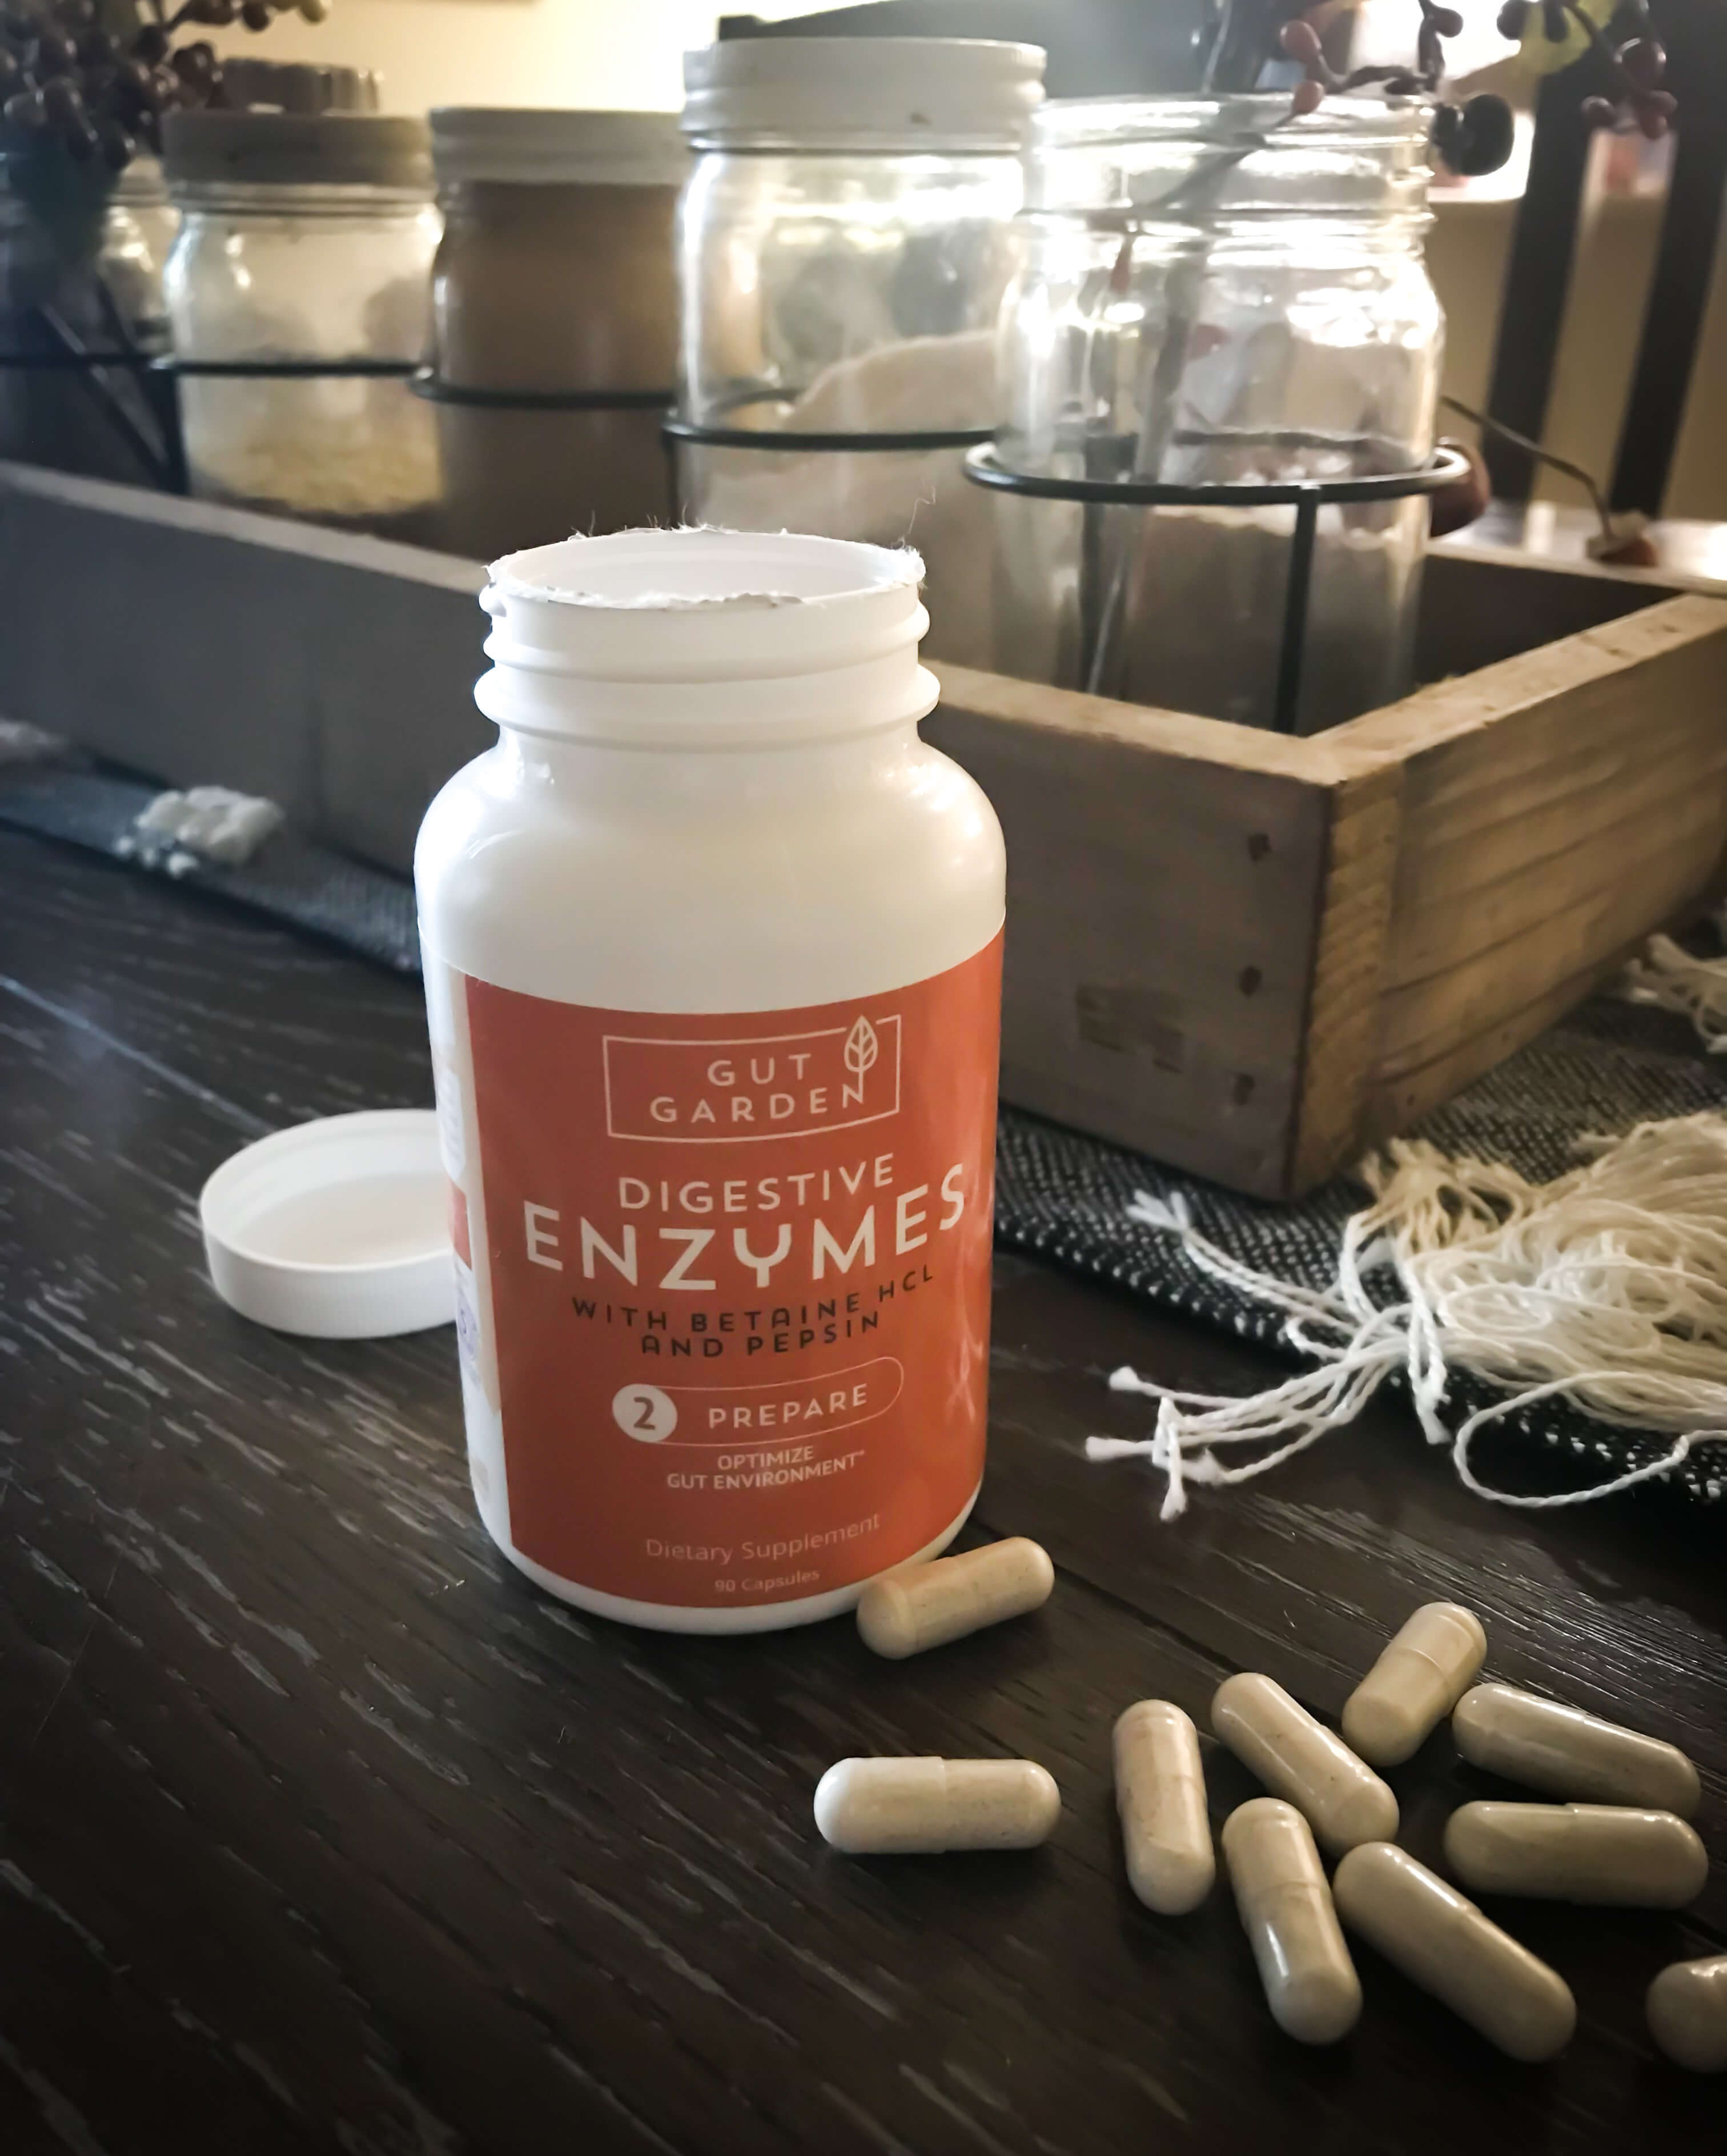 What are Digestive Enzymes agutsygirl.com Gut Garden digestion supplements #enzymes #guthealth #digestiveenzyme #supplement